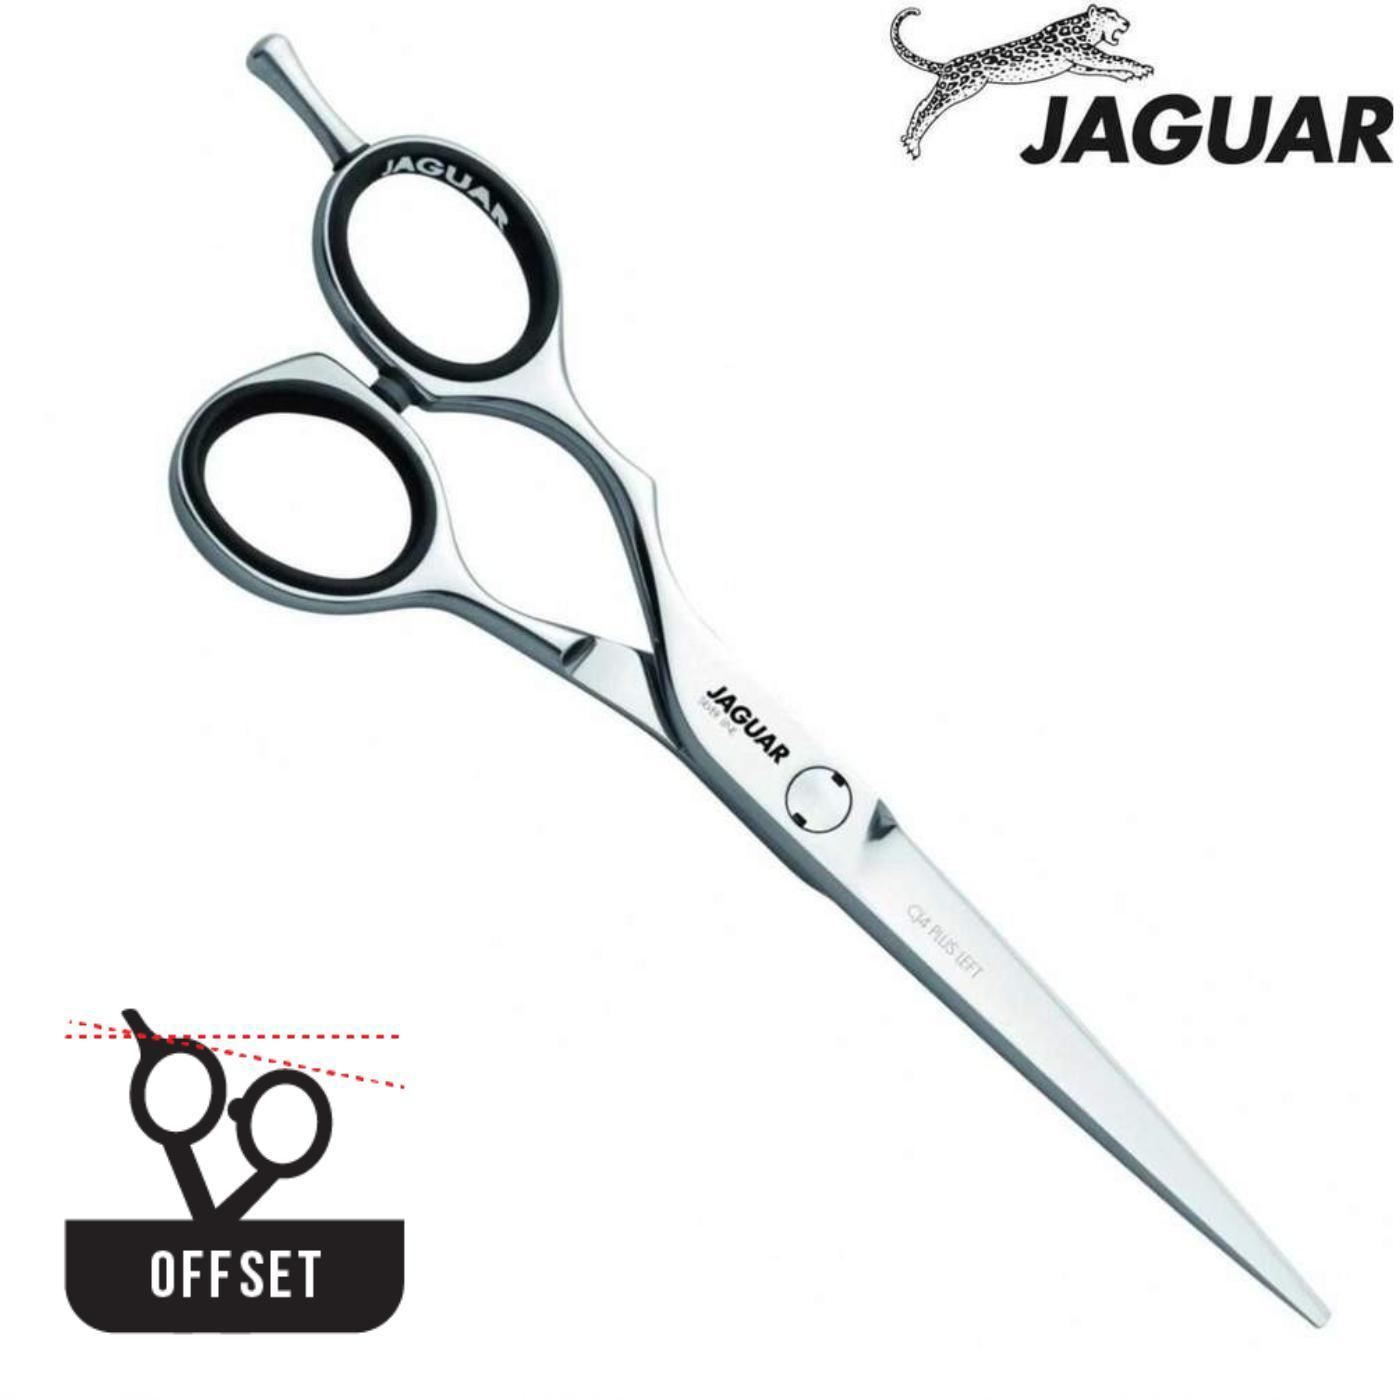 Jaguar Silver Line CJ4 Offset Hair Cutting Scissors - Japan Scissors